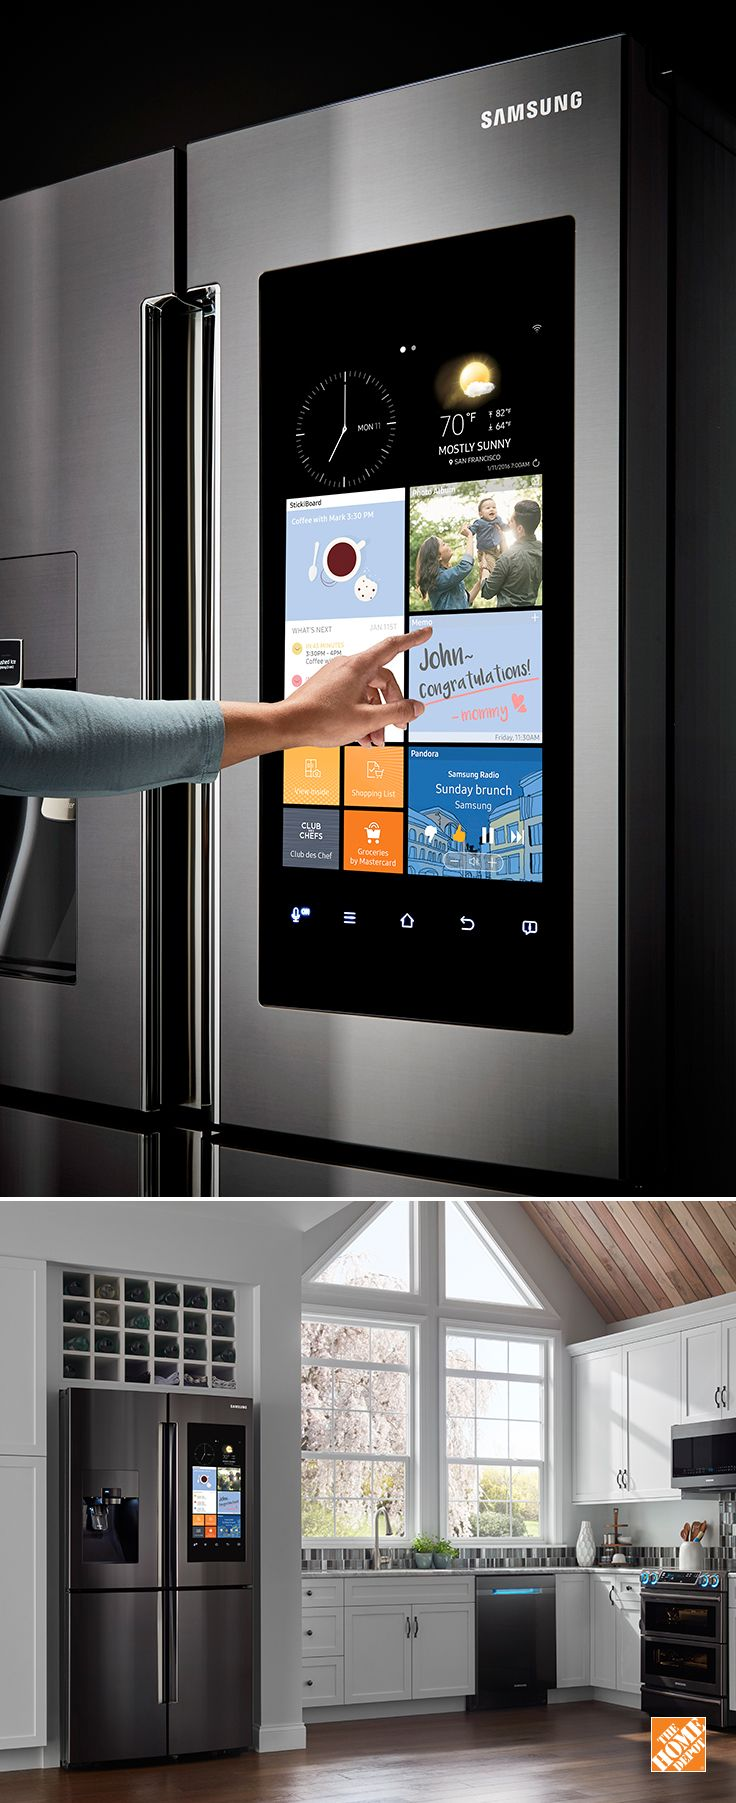 Make The Kitchen The Center Of Your Home Samsung S Family